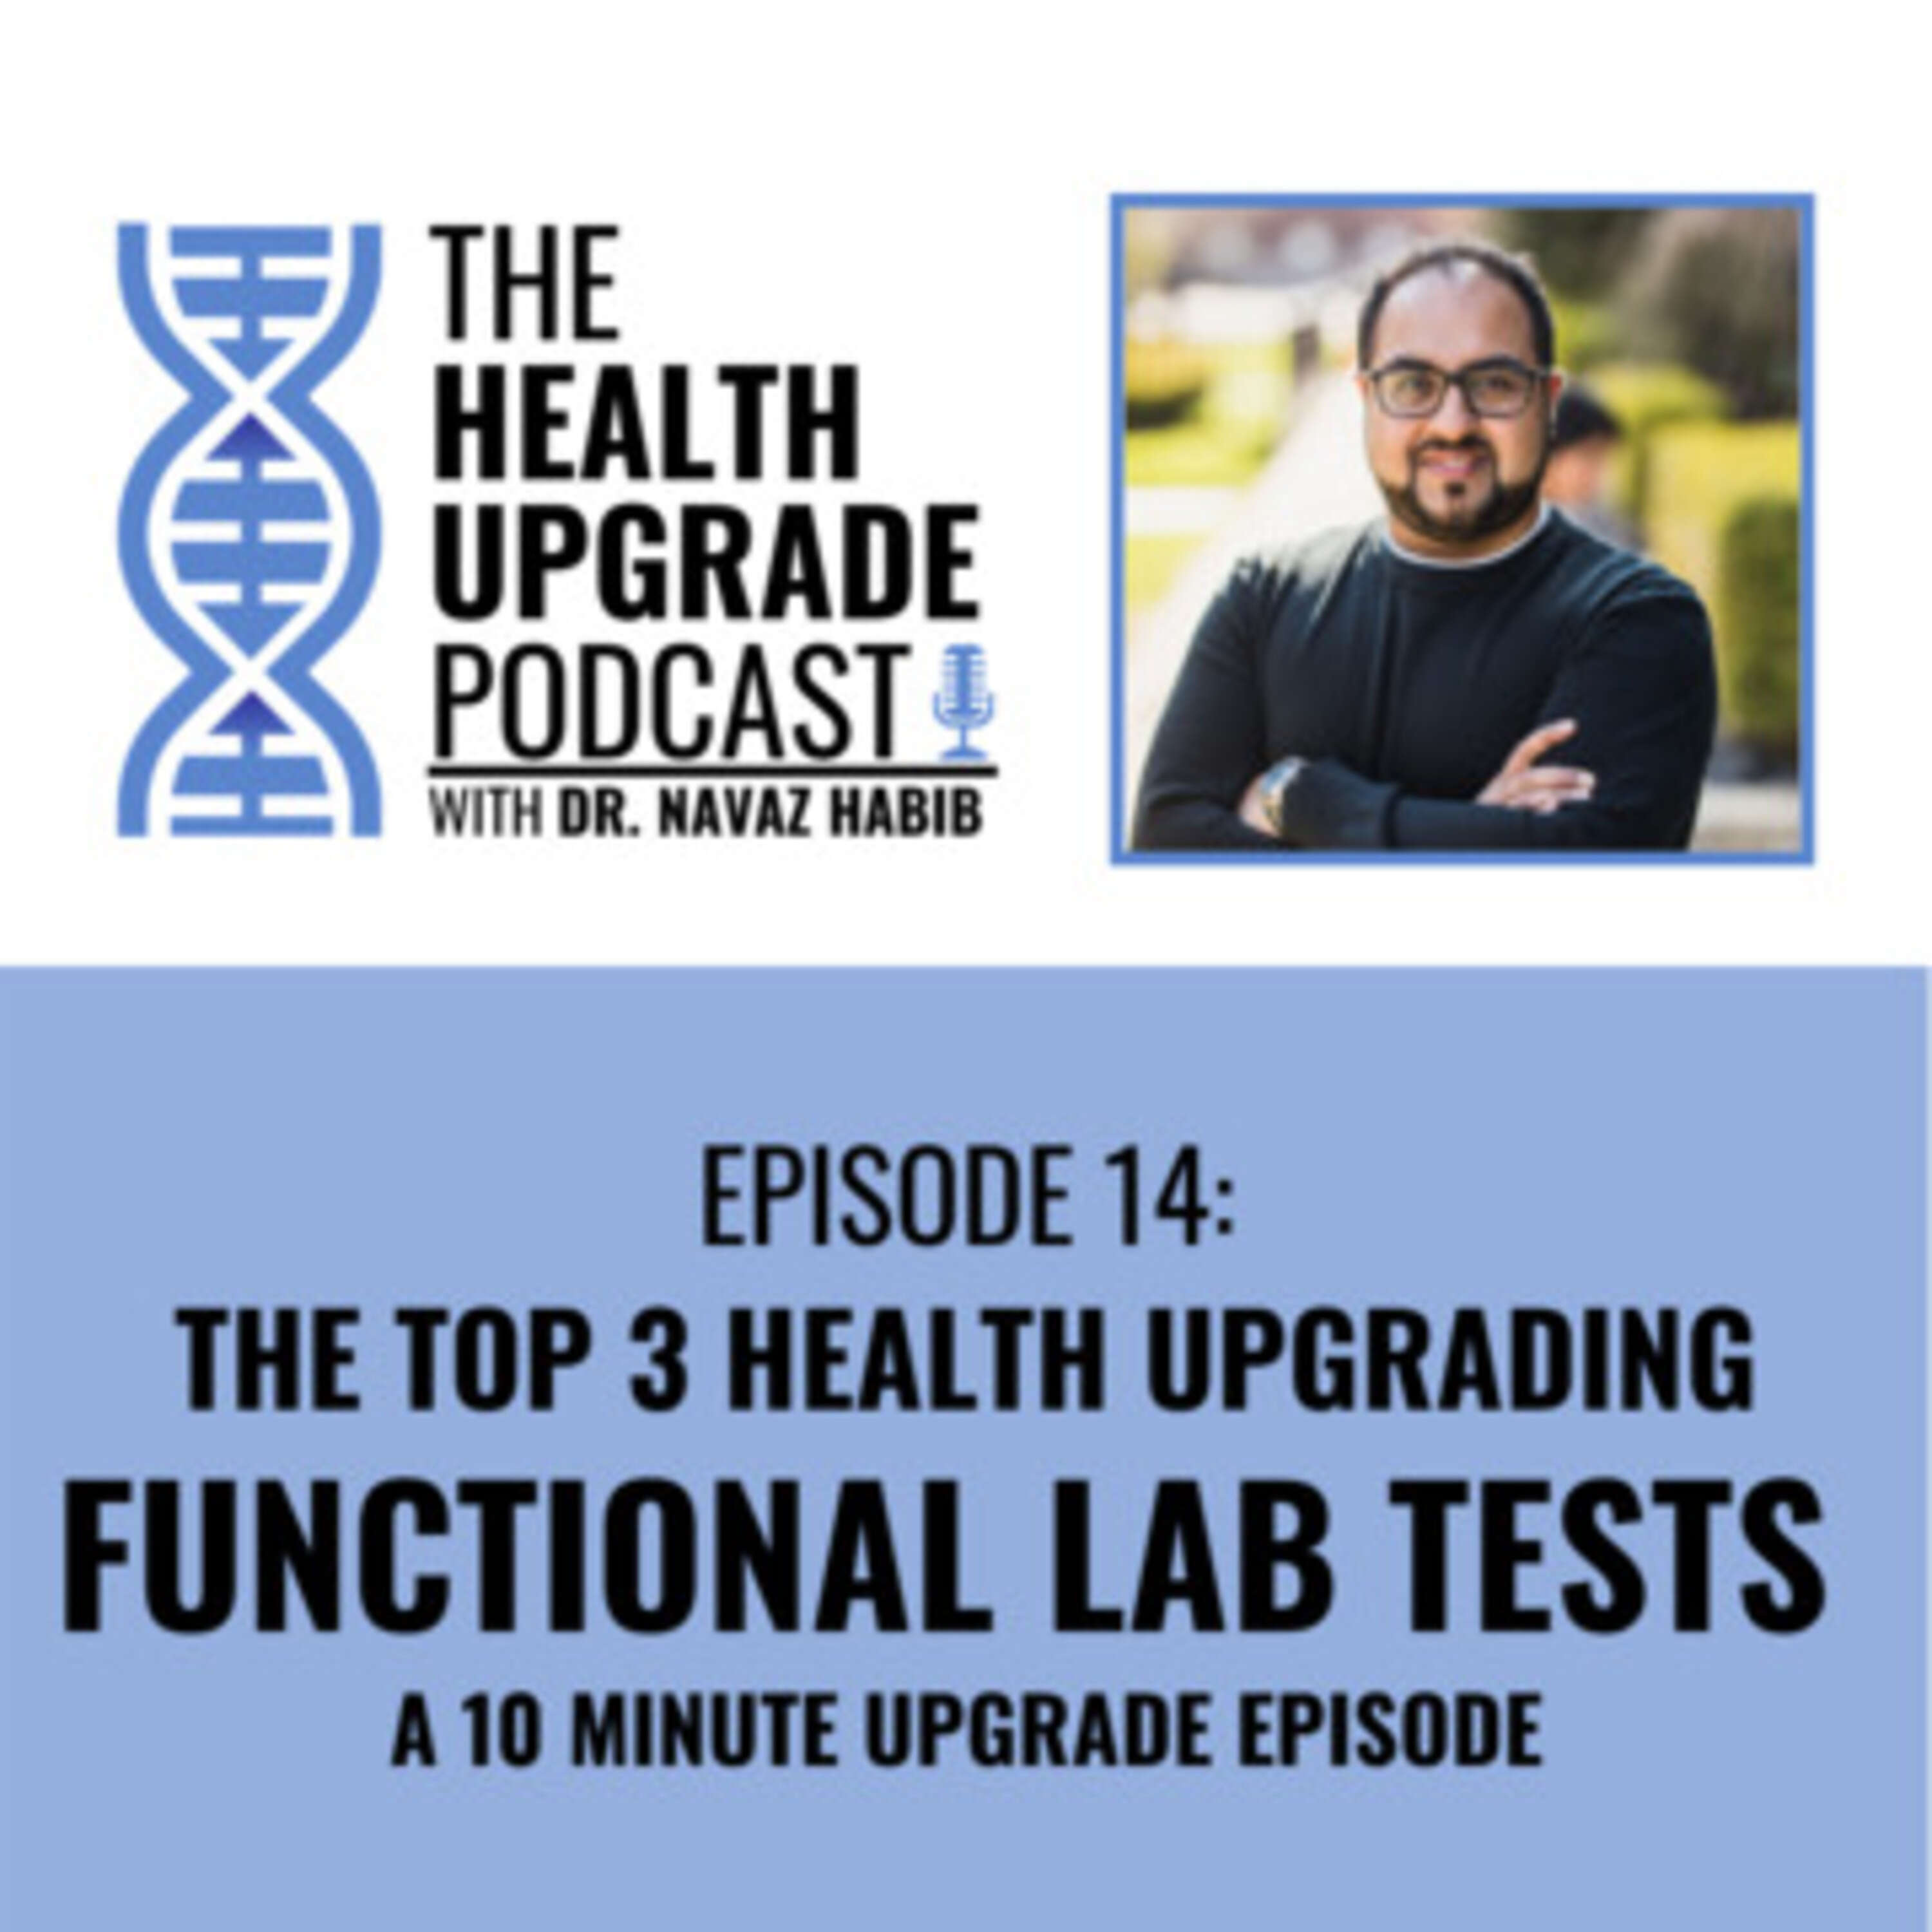 The top 3 Health Upgrading Functional Lab tests